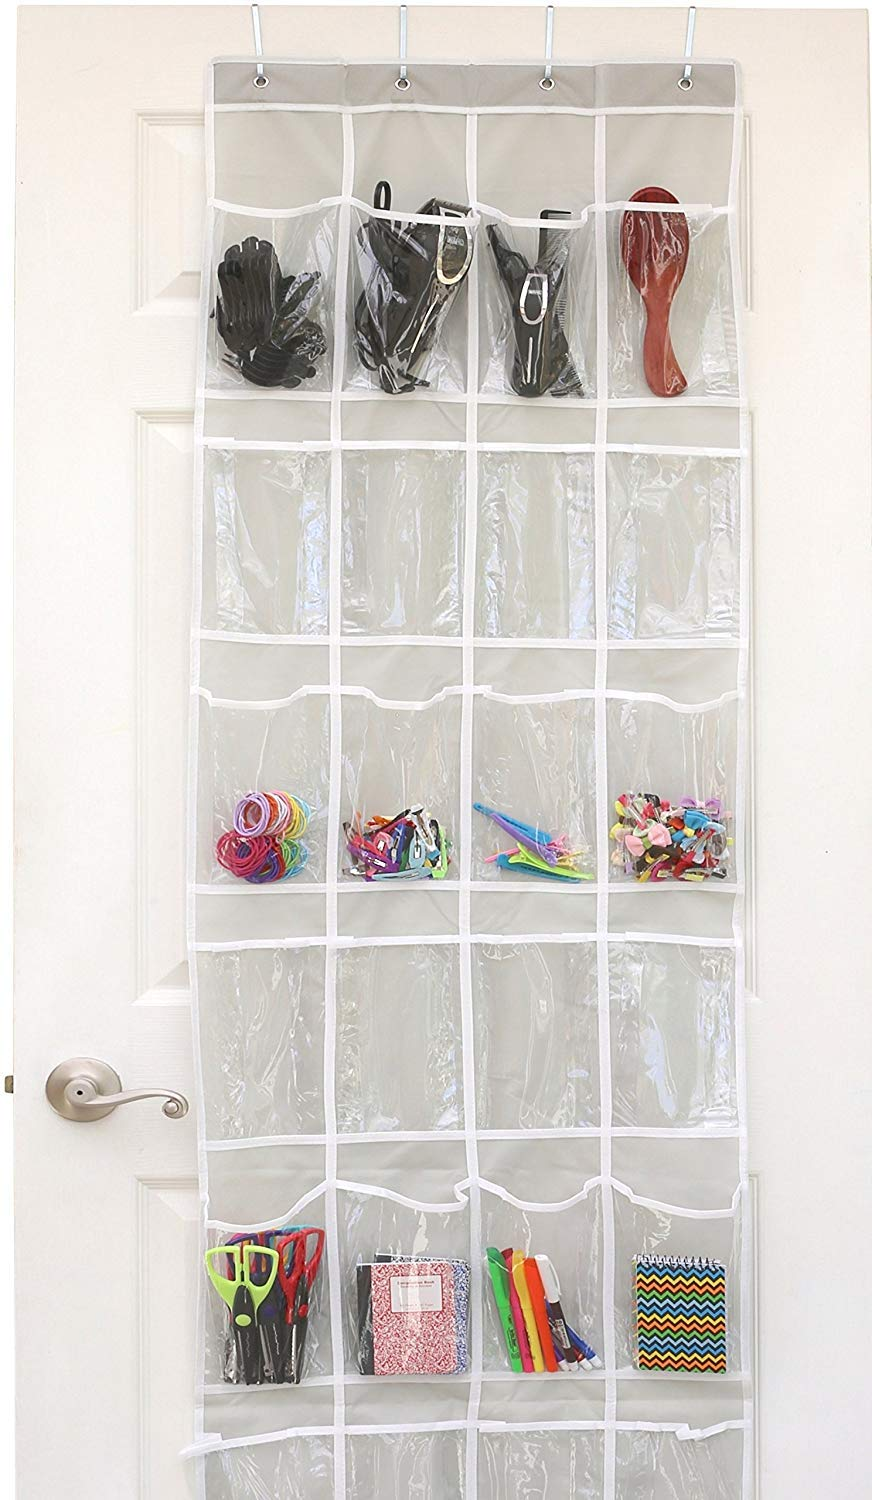 over-the-door clear 24 pocket shoe organizer